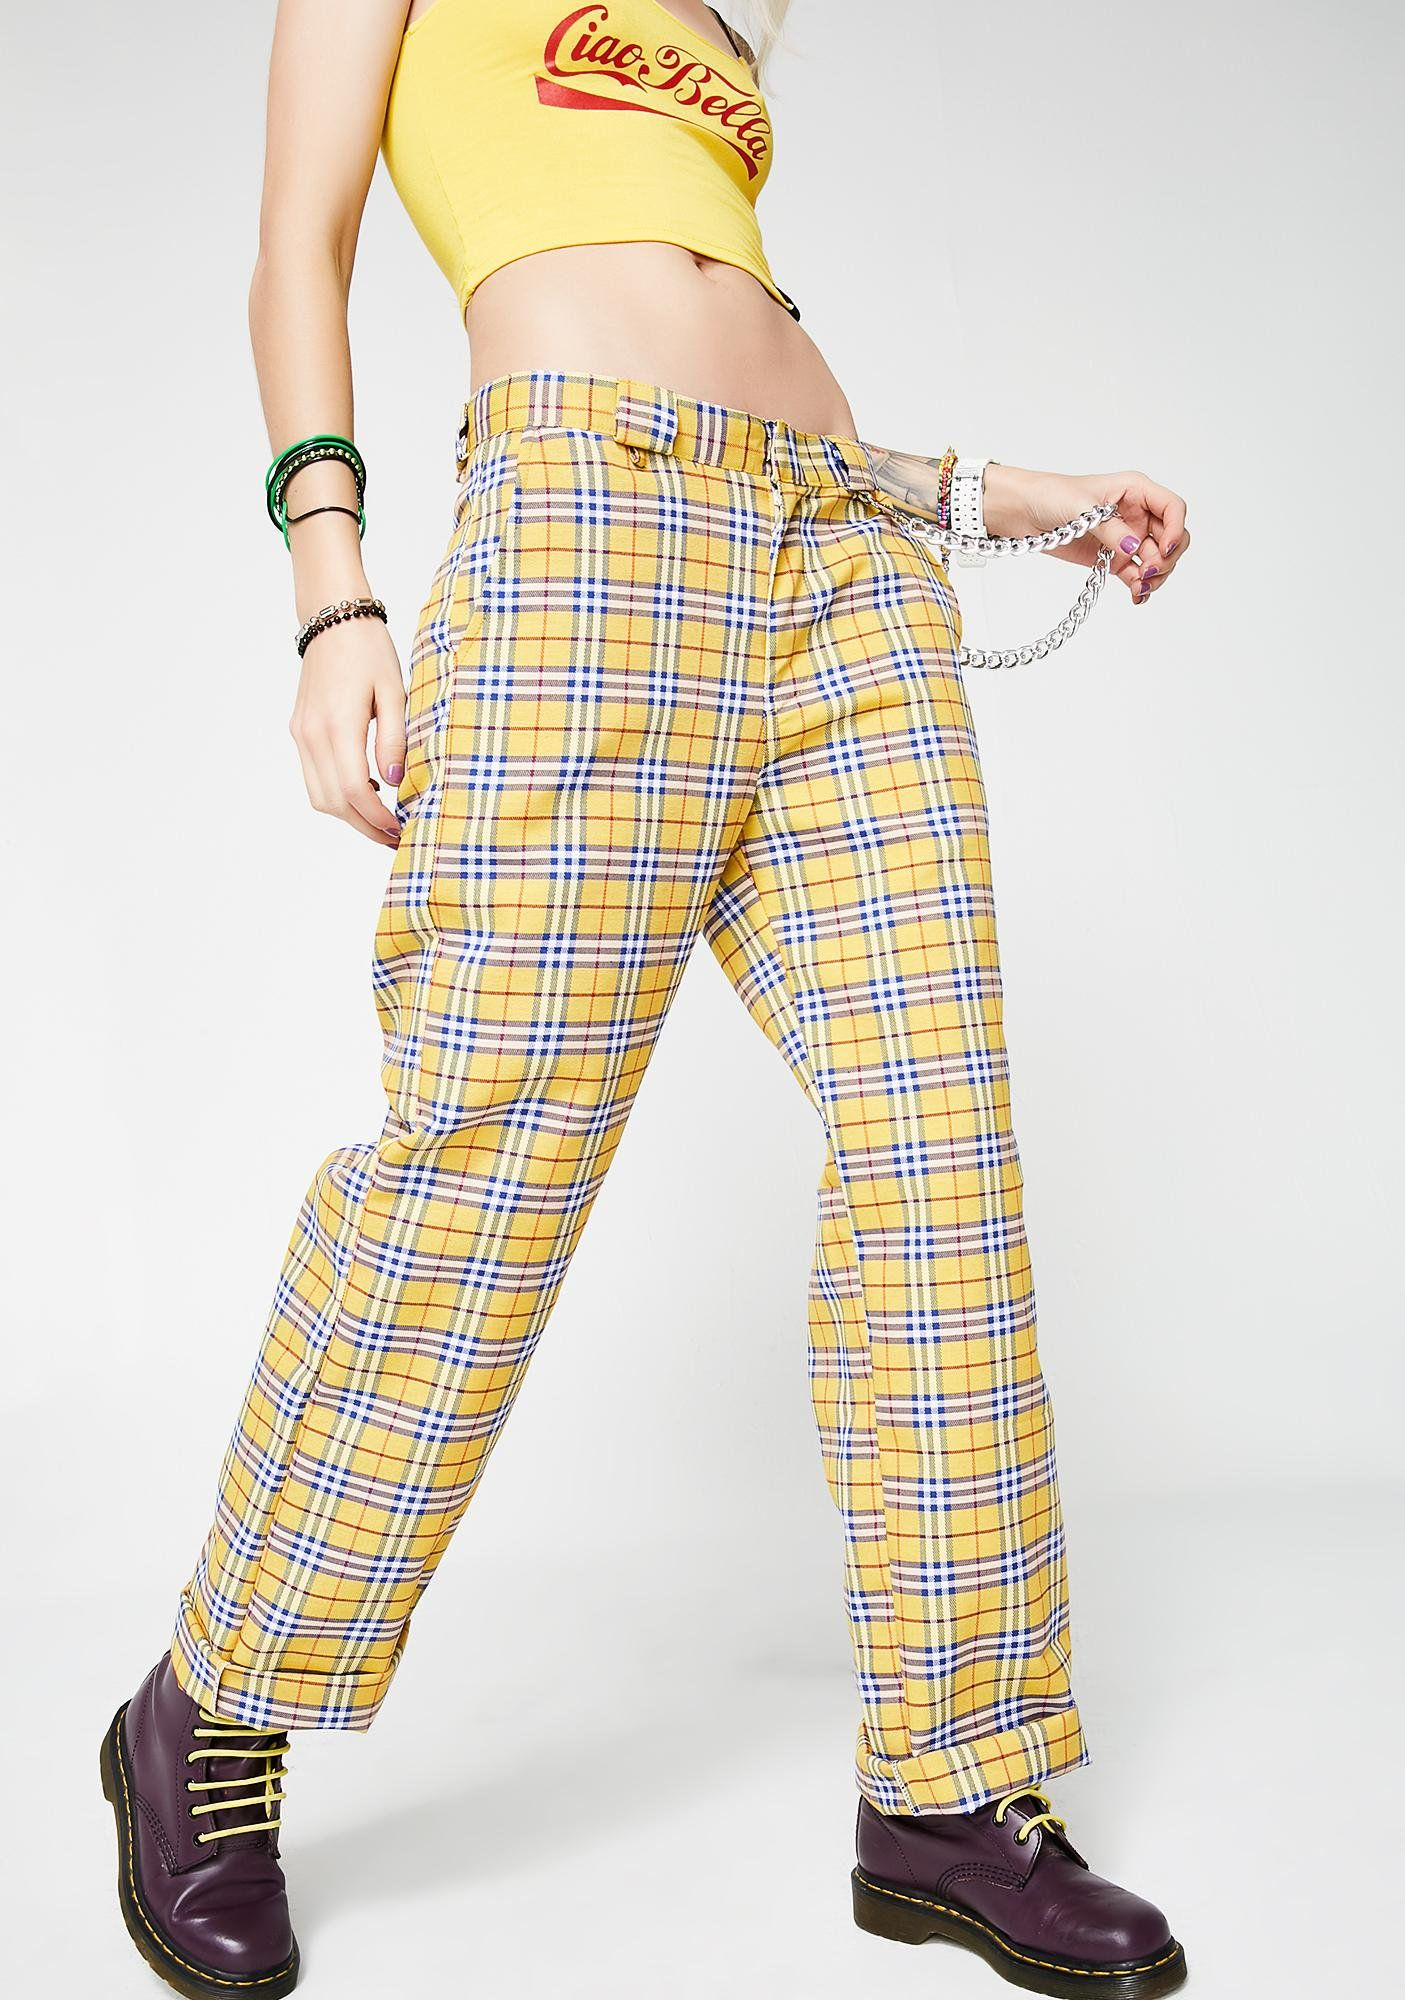 276cb3ea24b17b O Mighty Clueless Yellow Pants cuz you givin  em  AS IF vibez. Do whatever  with these pants that has a yellow tartan print all ova